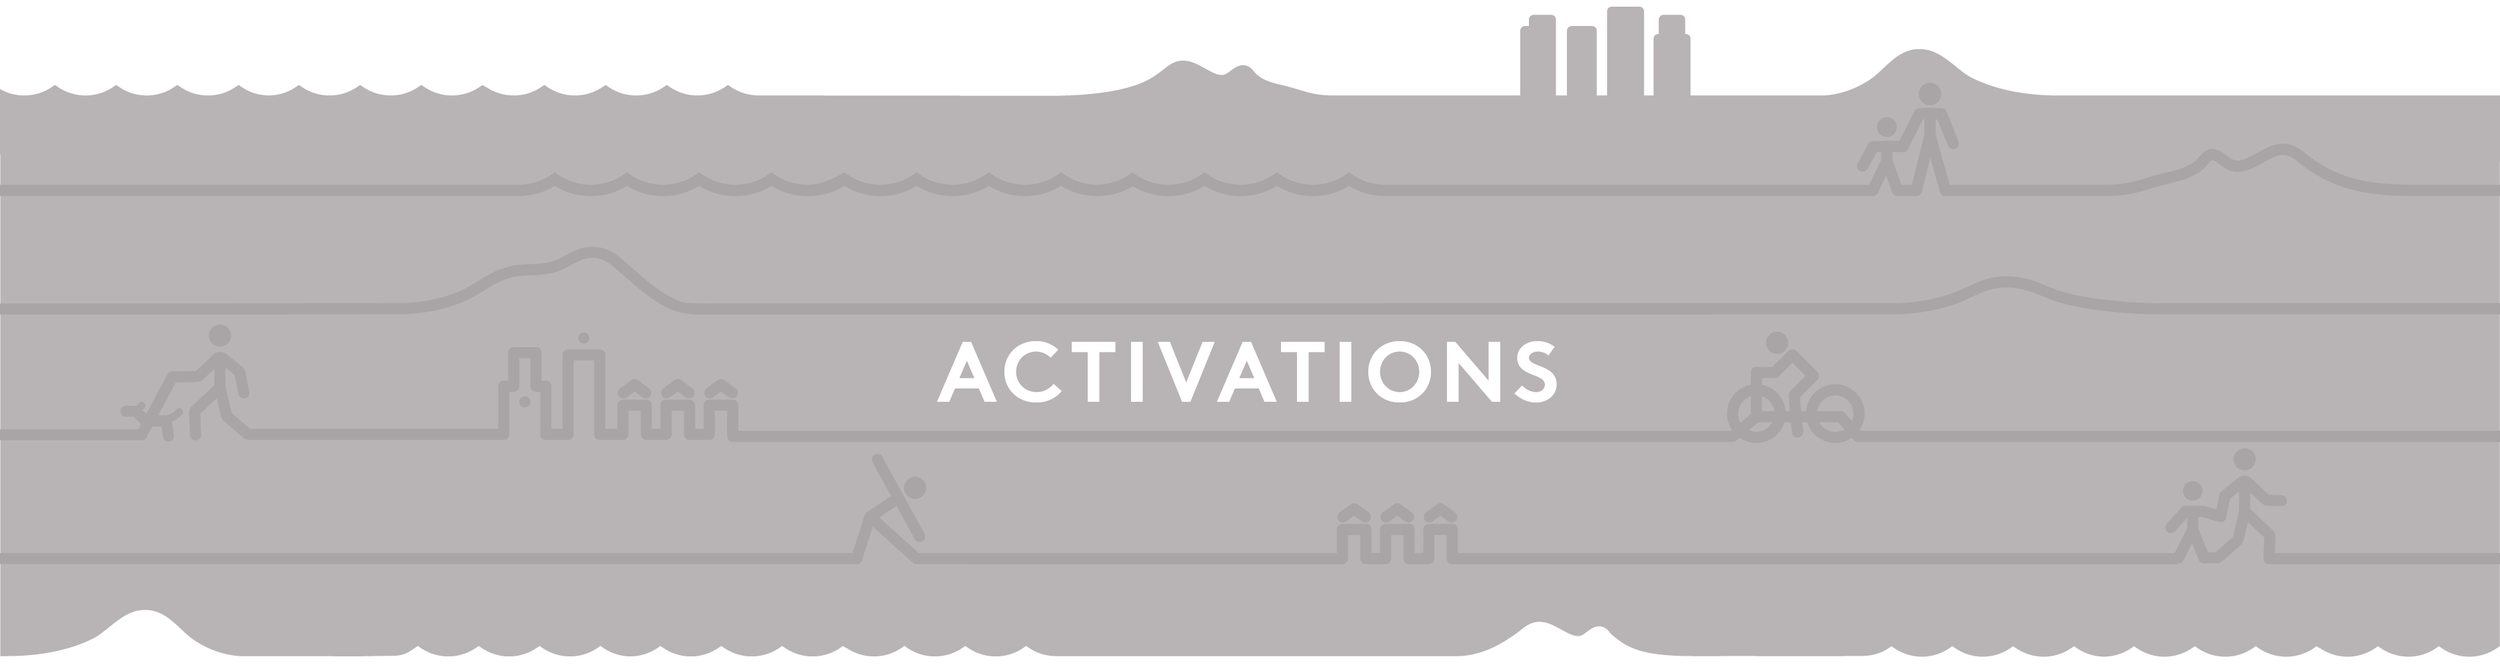 TMPW_Background_Activations-13.png